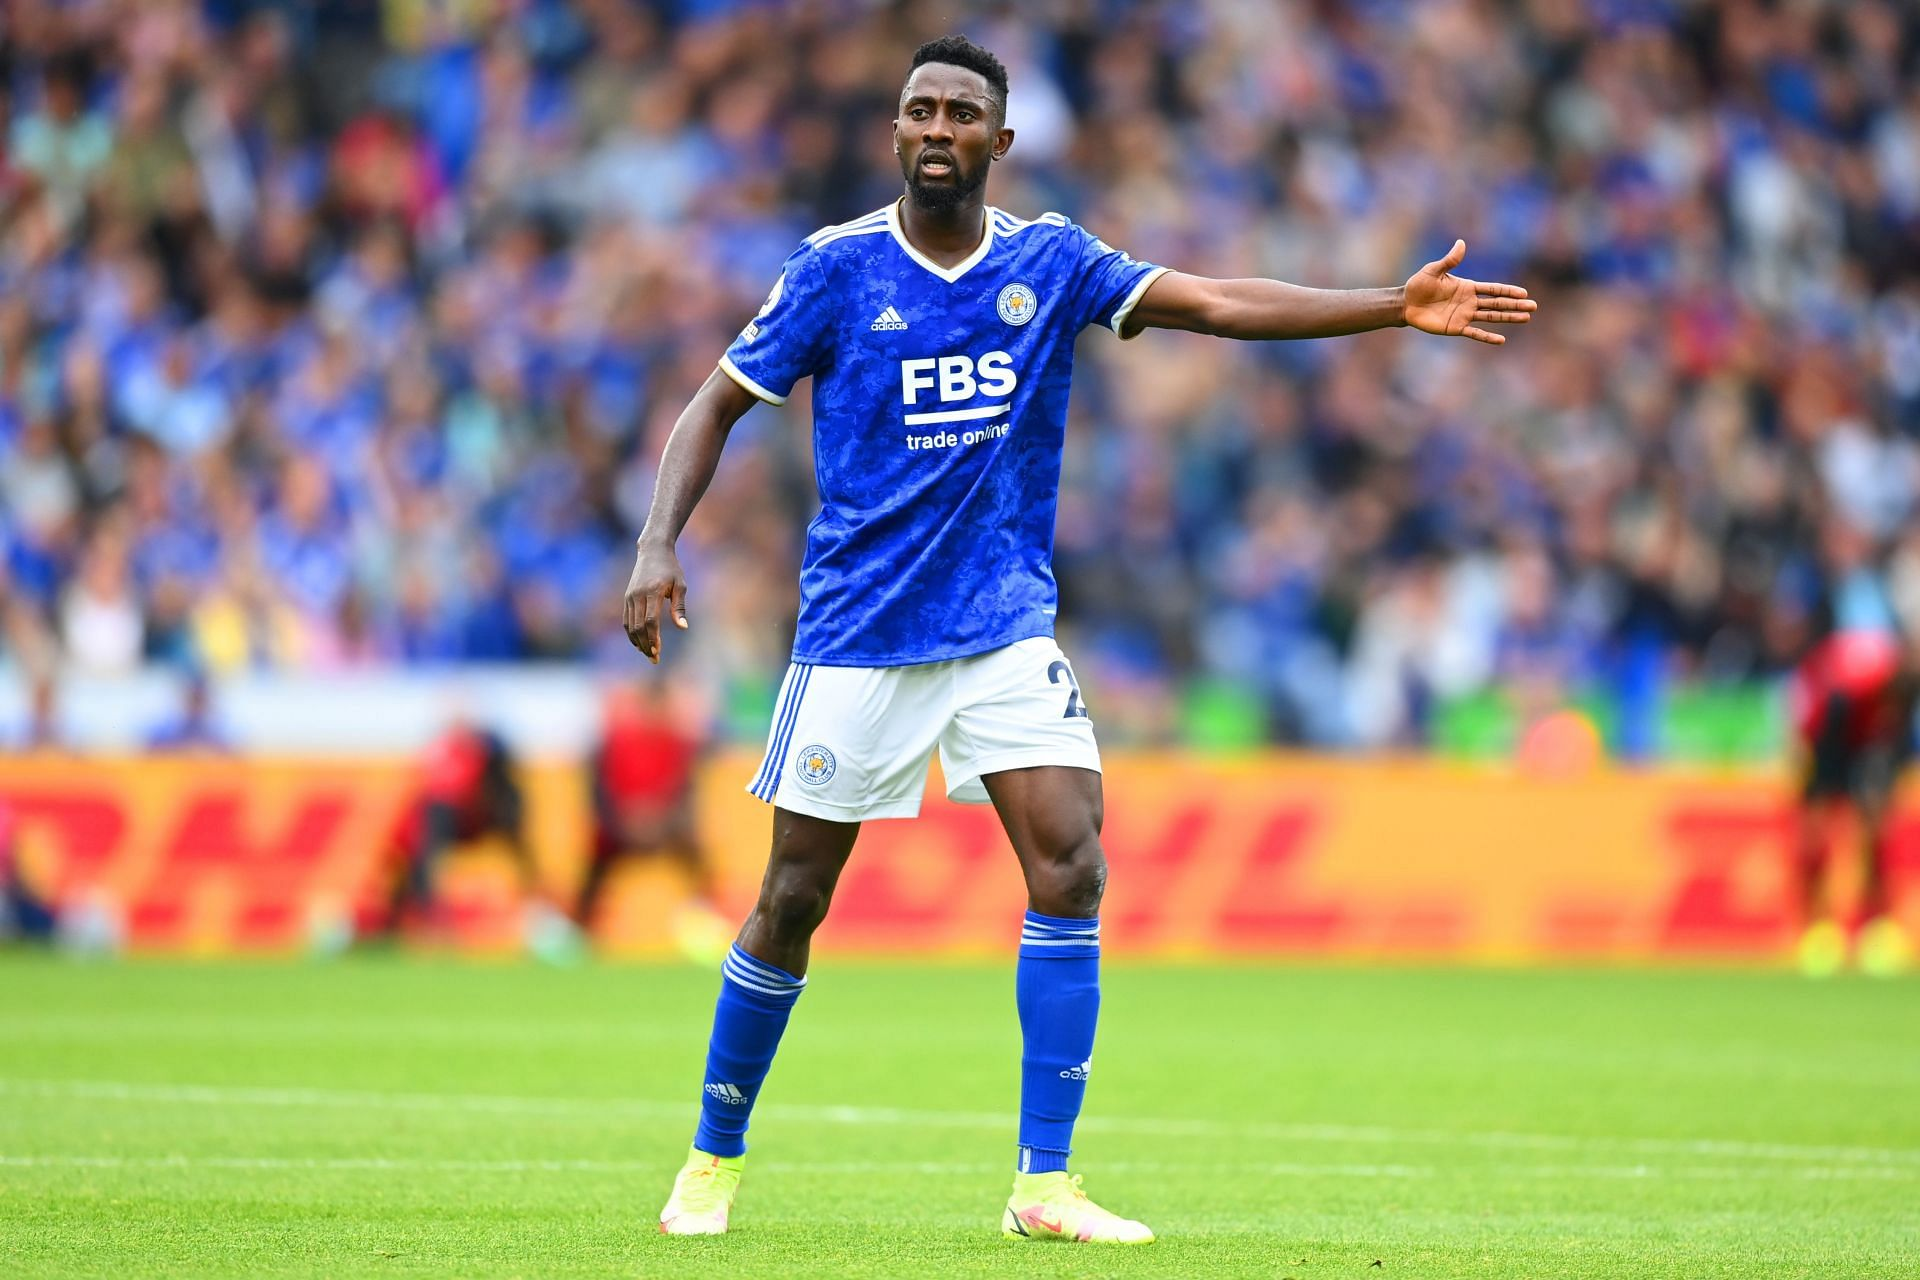 Luke Chadwick has urged Manchester United to complete a move for Wilfred Ndidi.